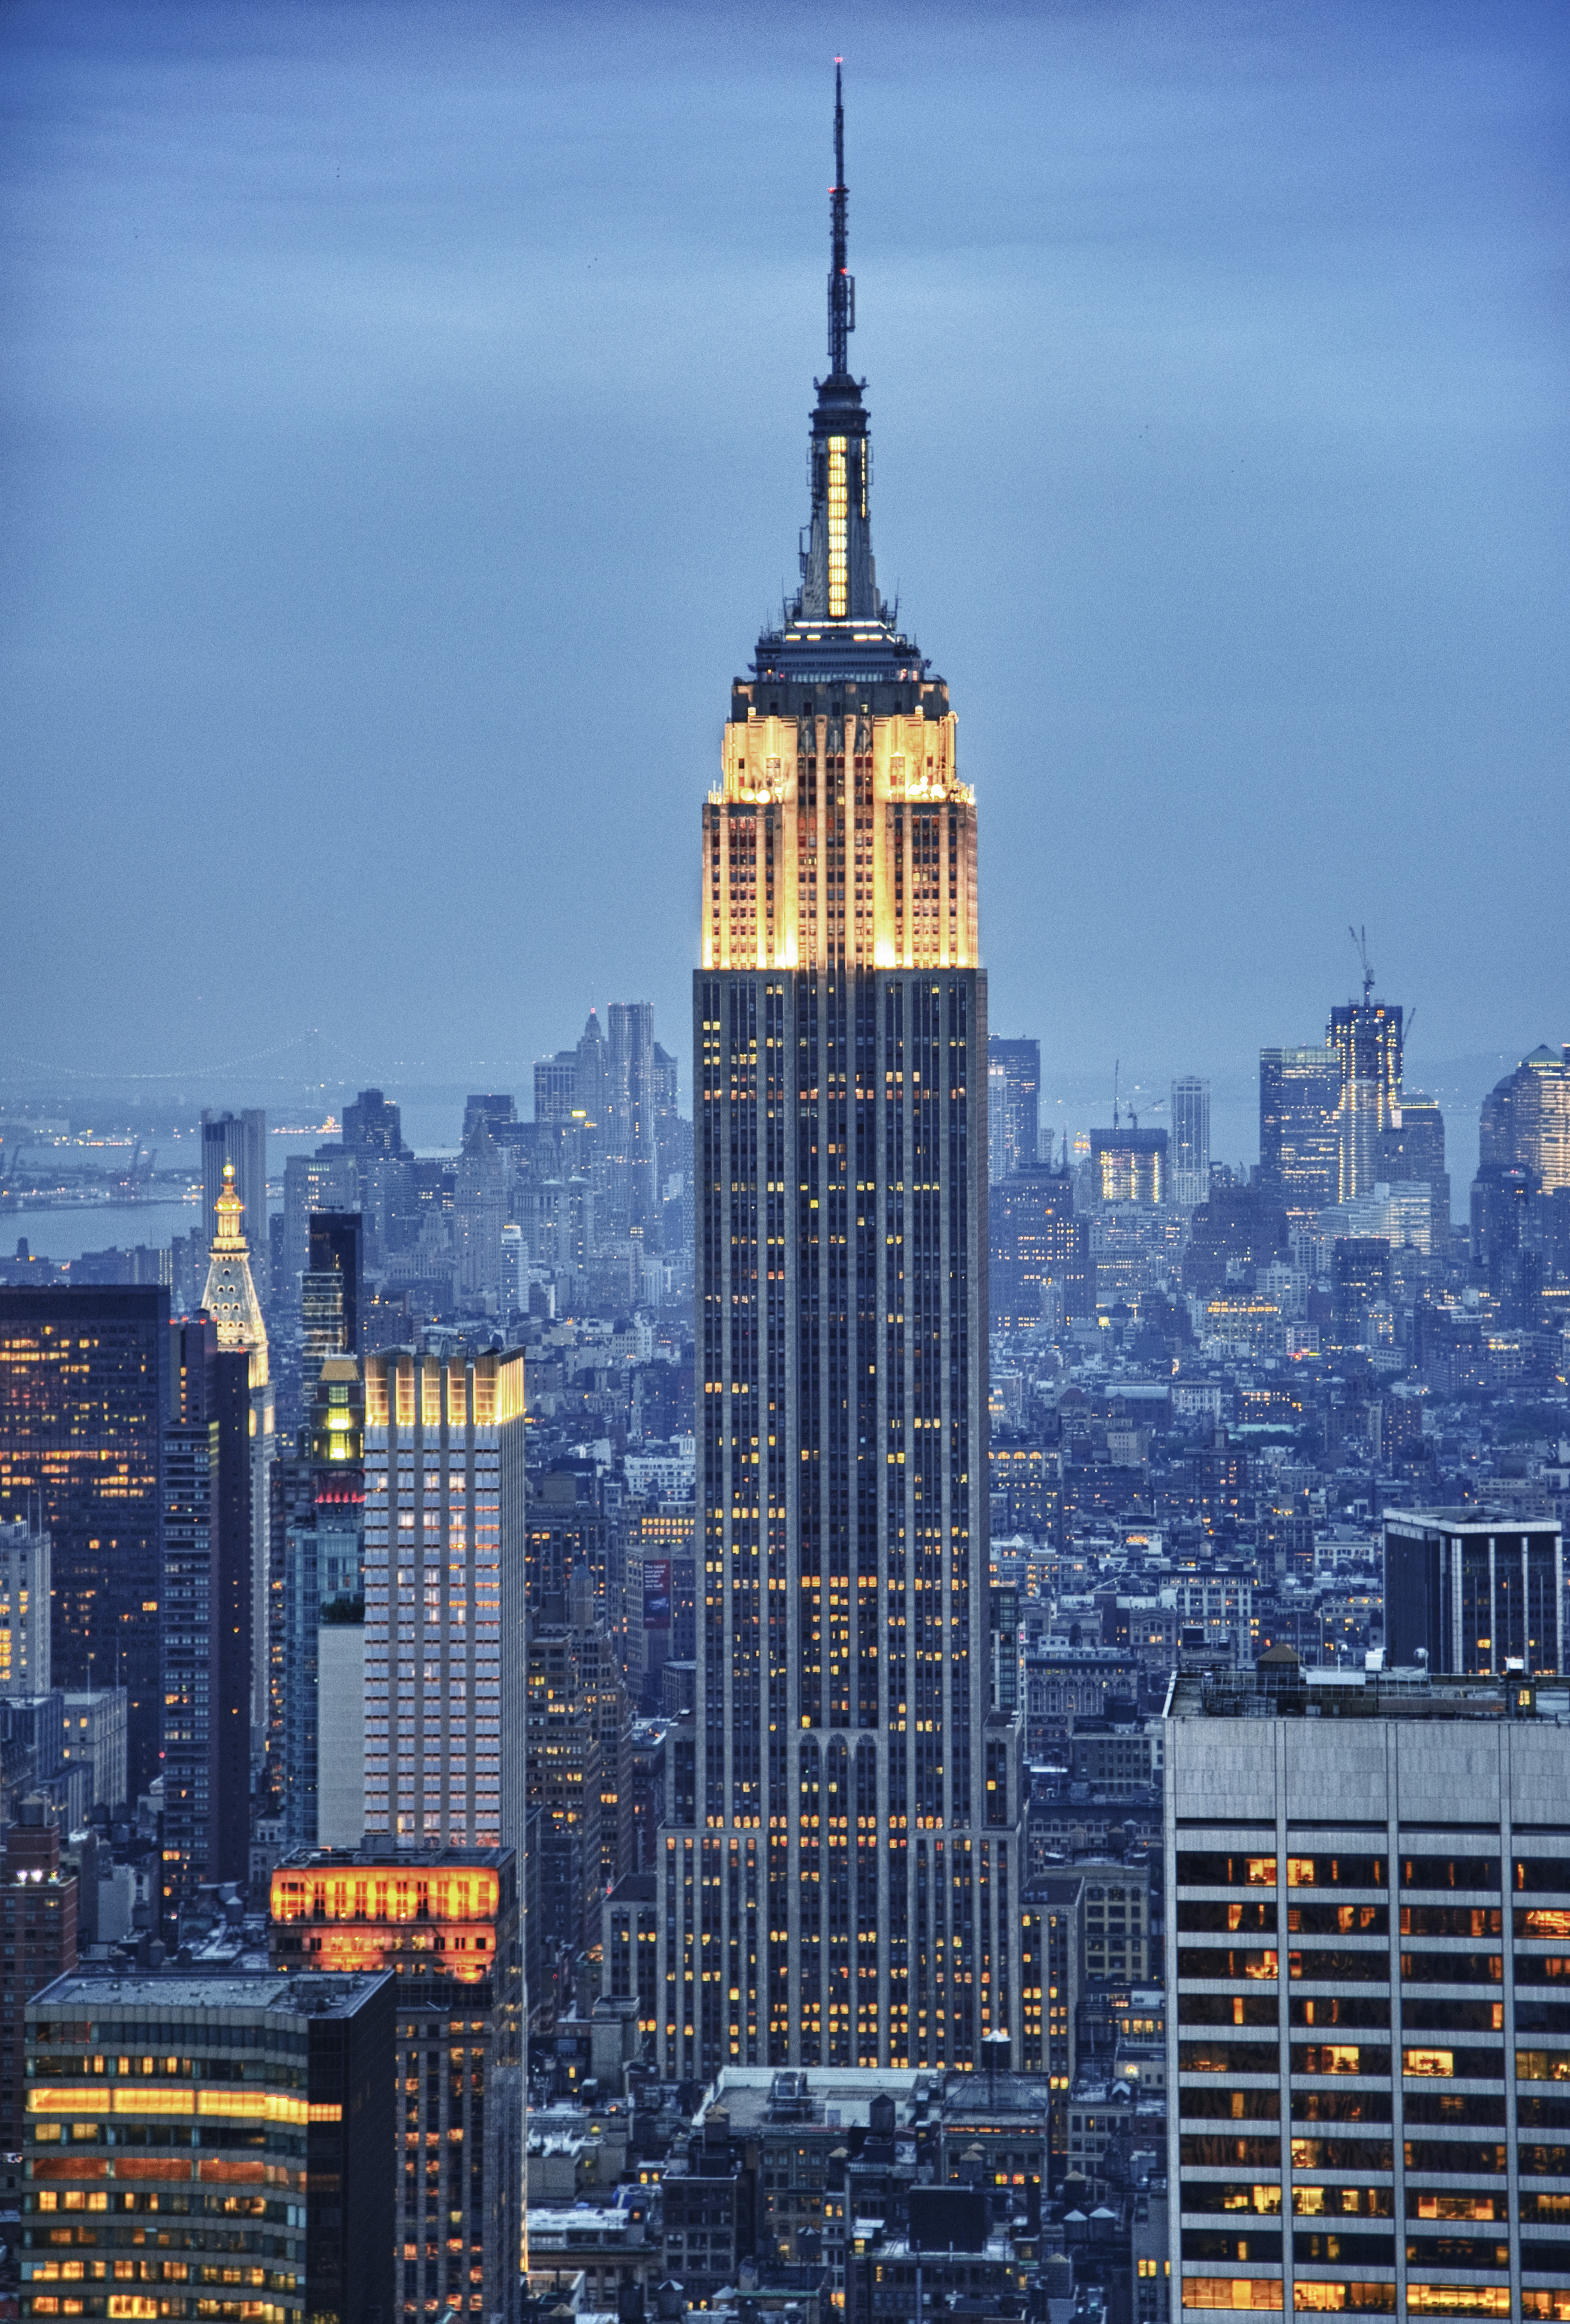 File:Empire State Building (HDR).jpg - Wikimedia Commons